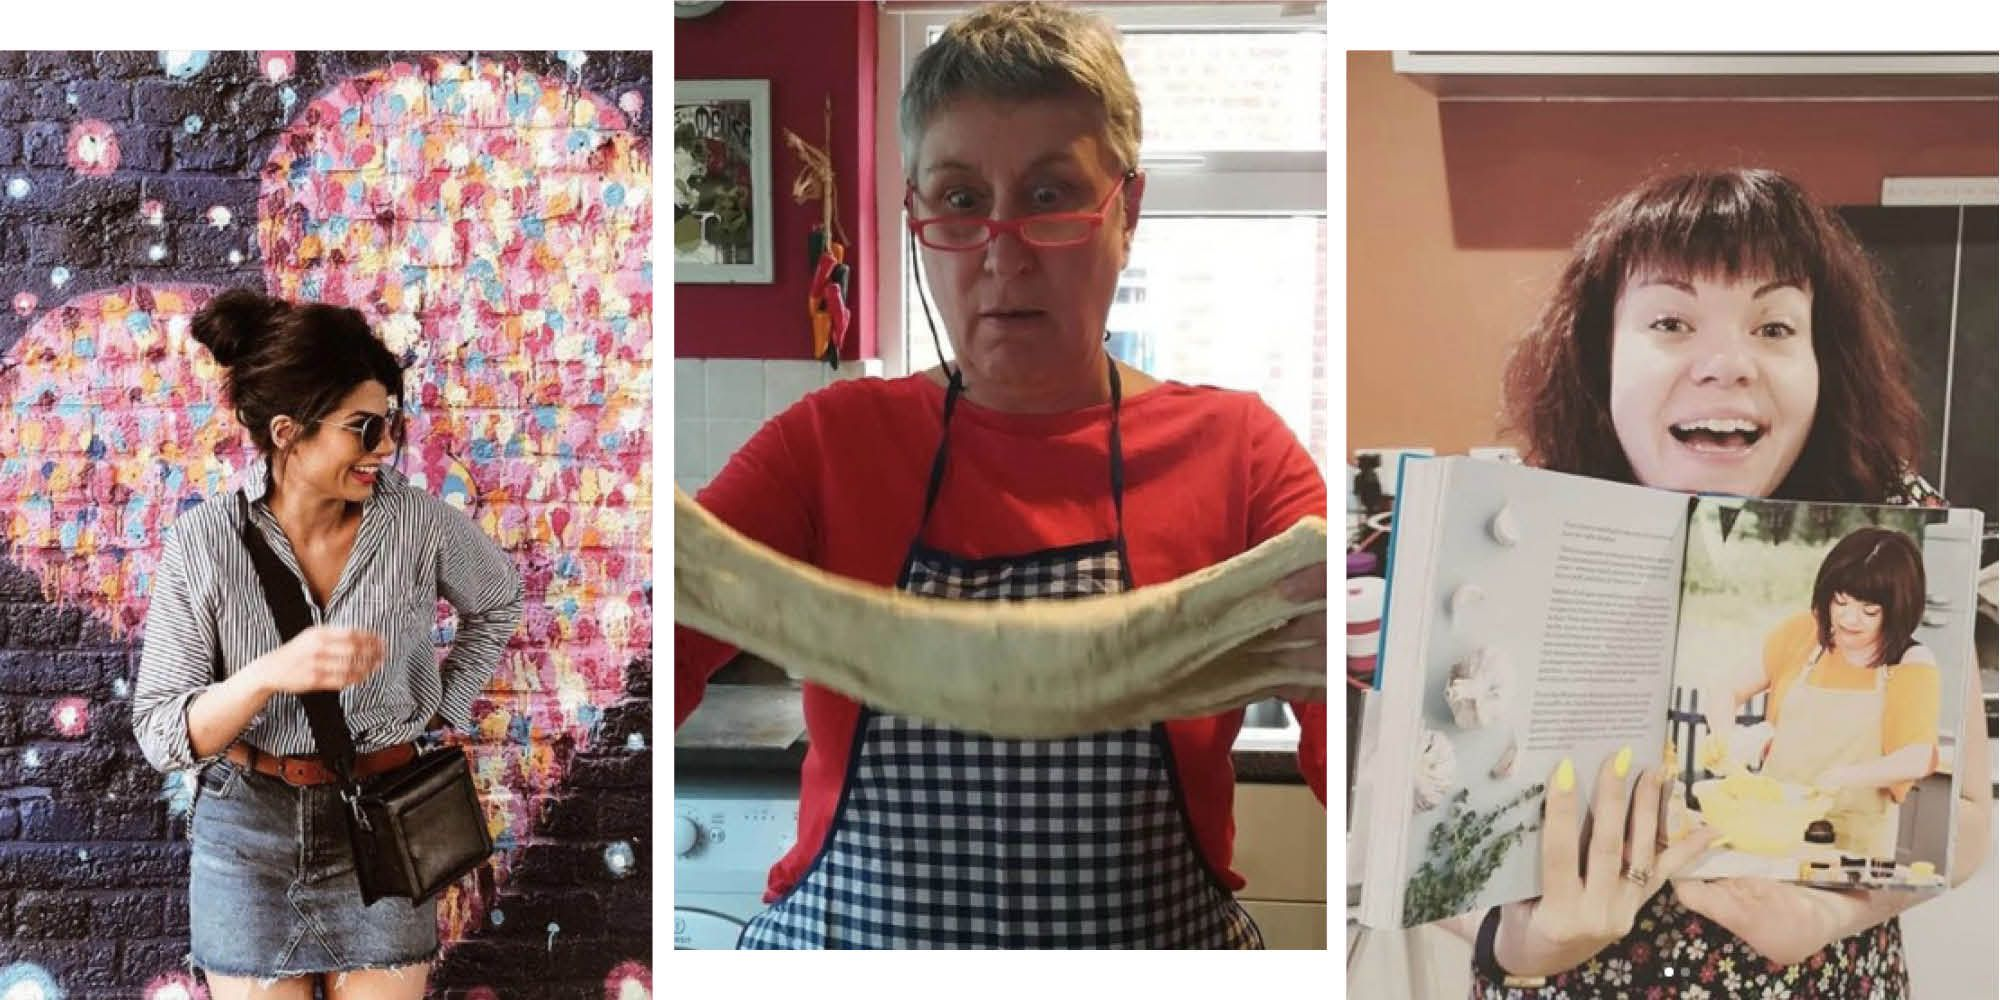 Find the Great British Bake Off contestants on social media